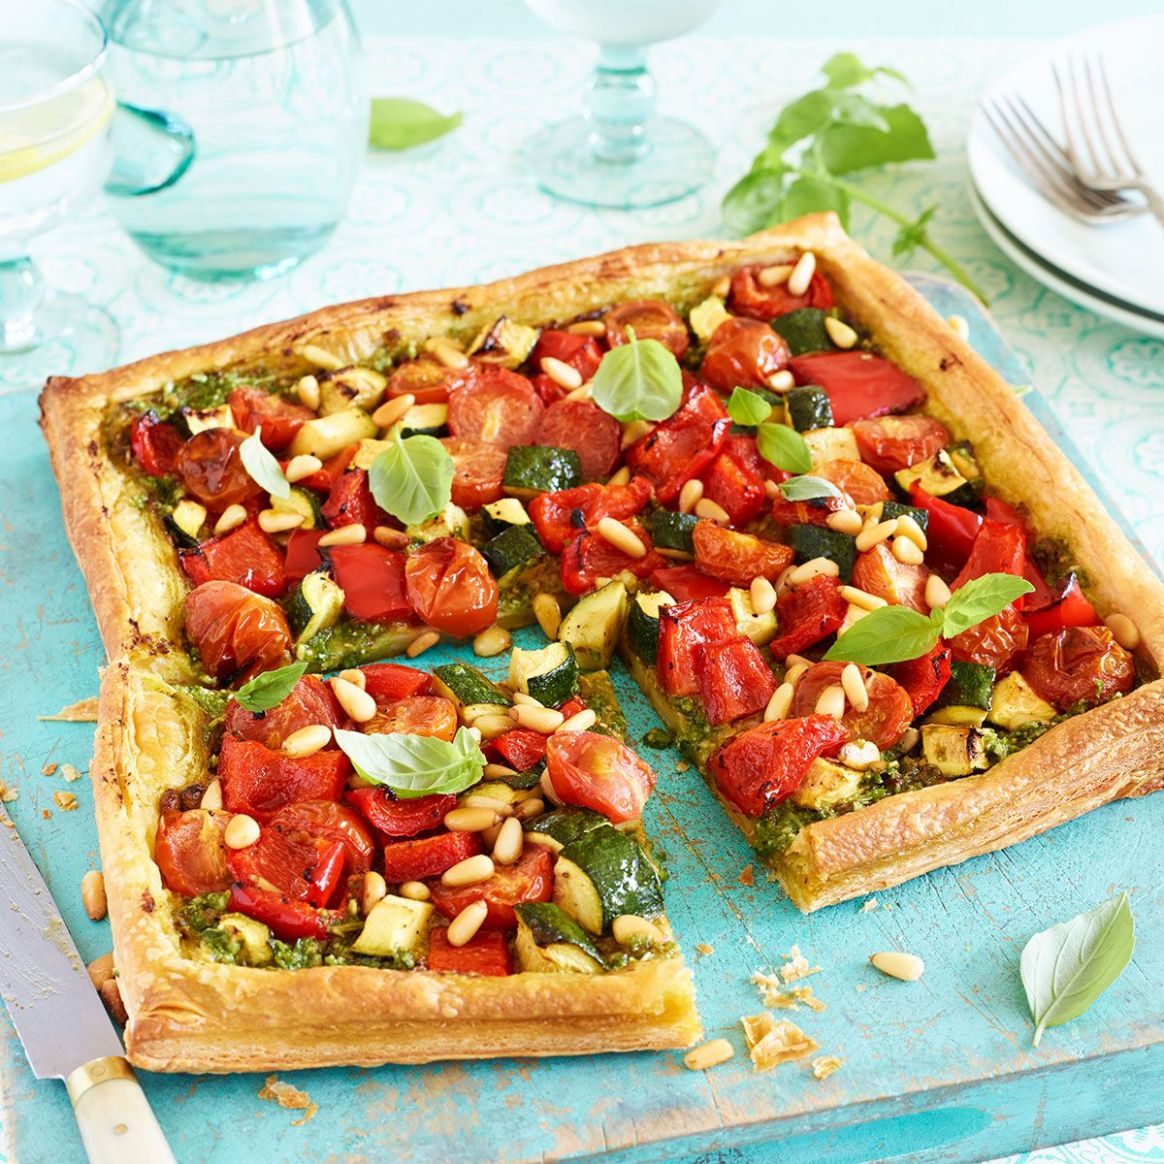 End of summer tart - Summer Recipes Good Housekeeping